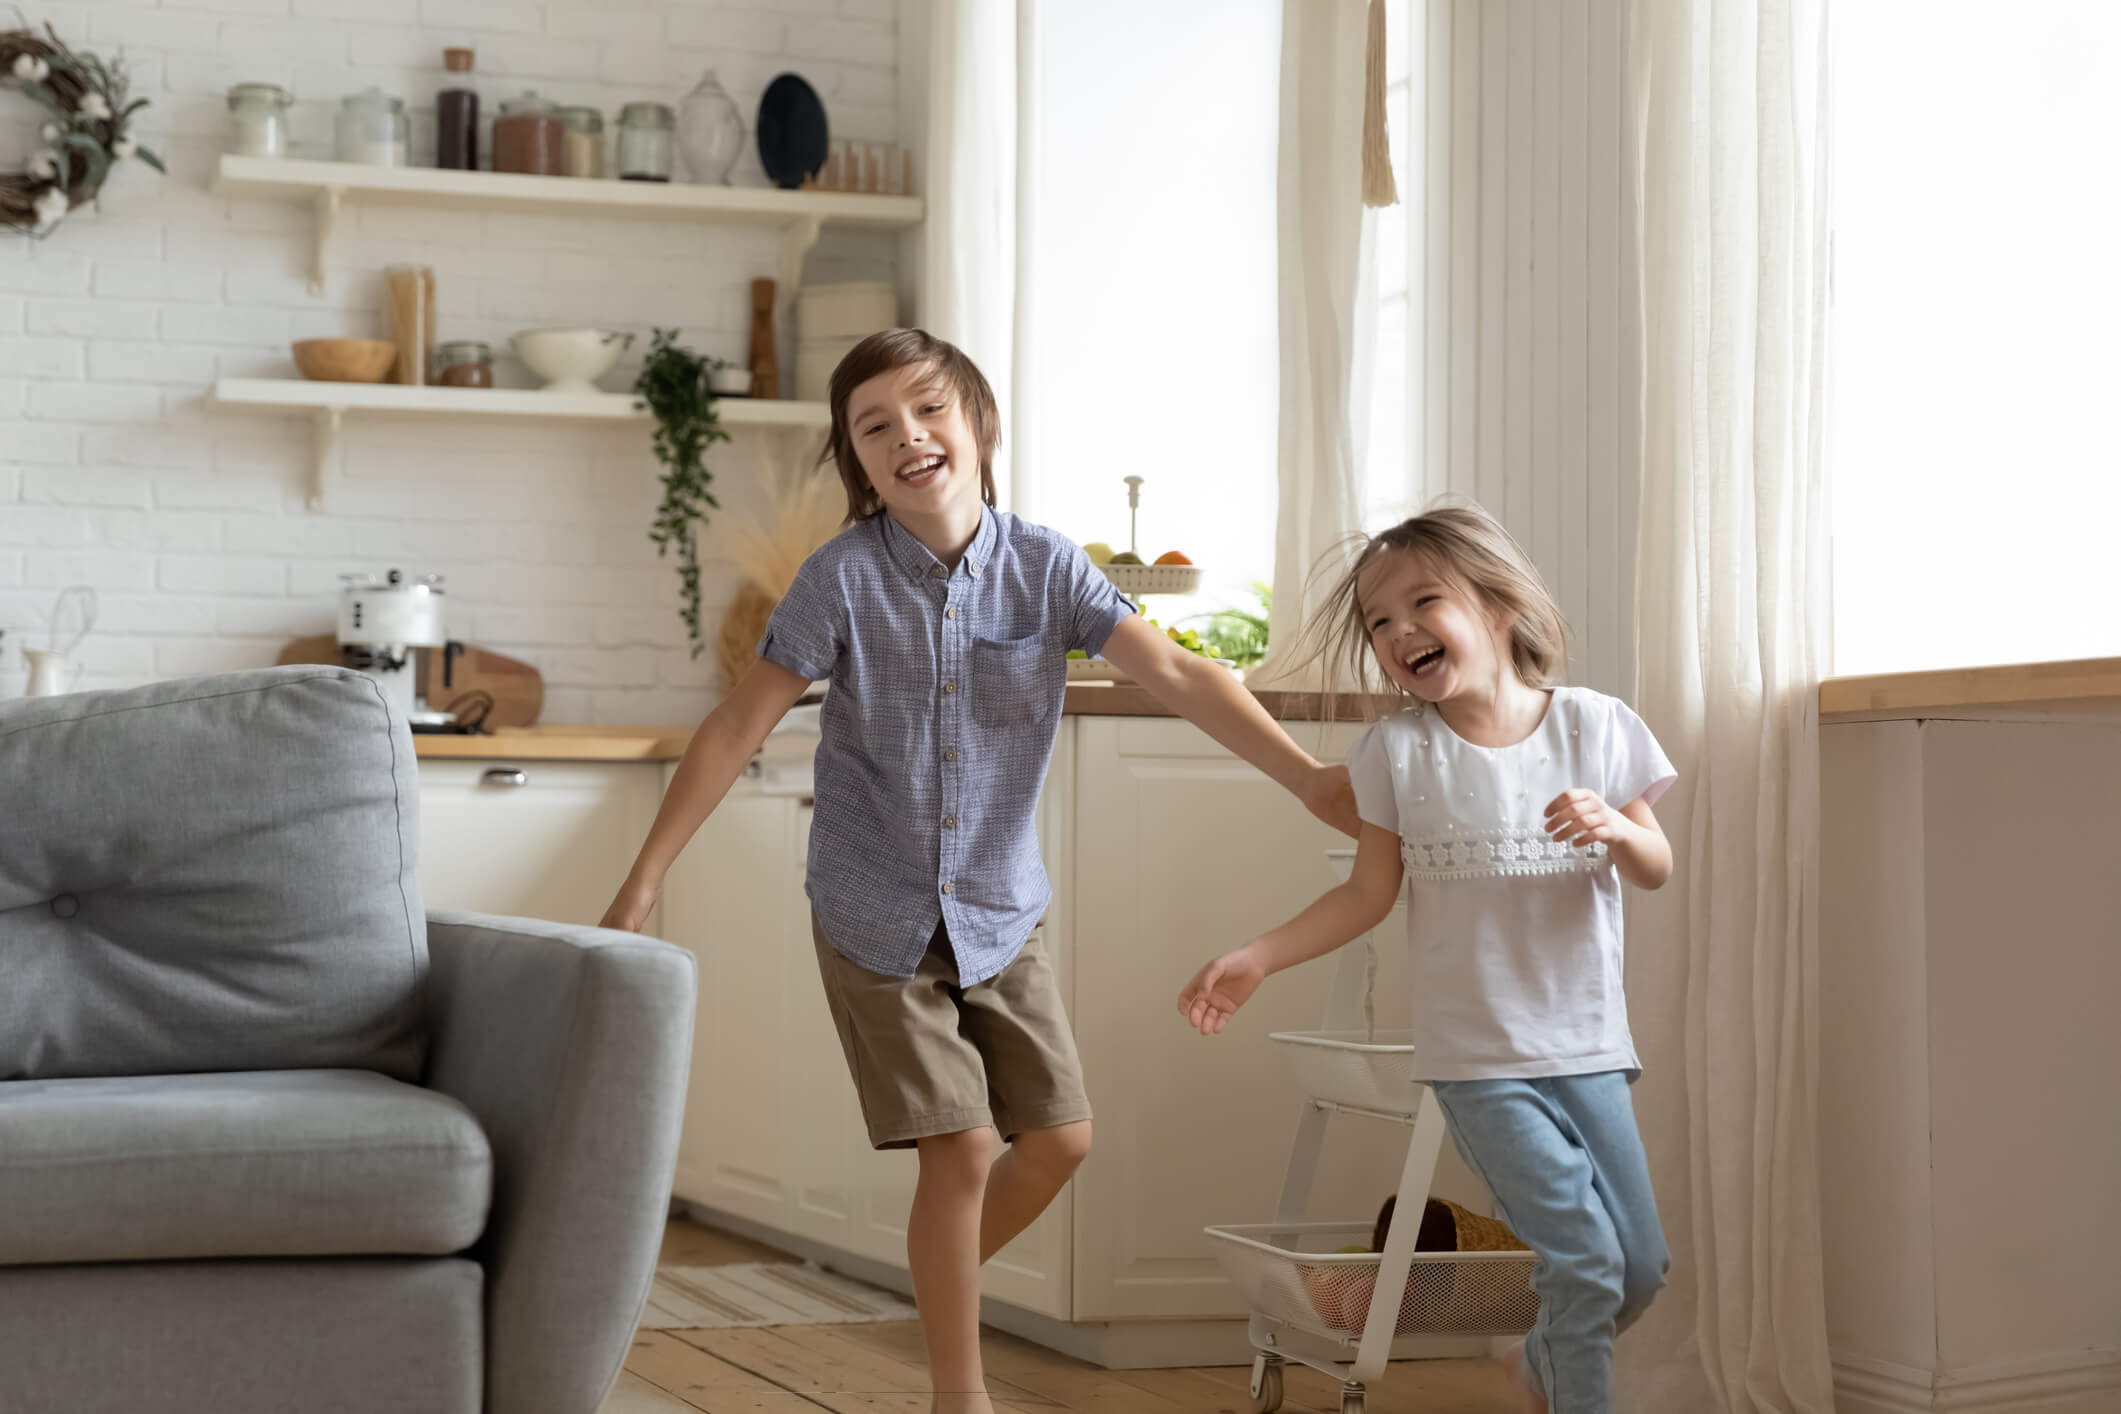 Two children smiling while running through a living room